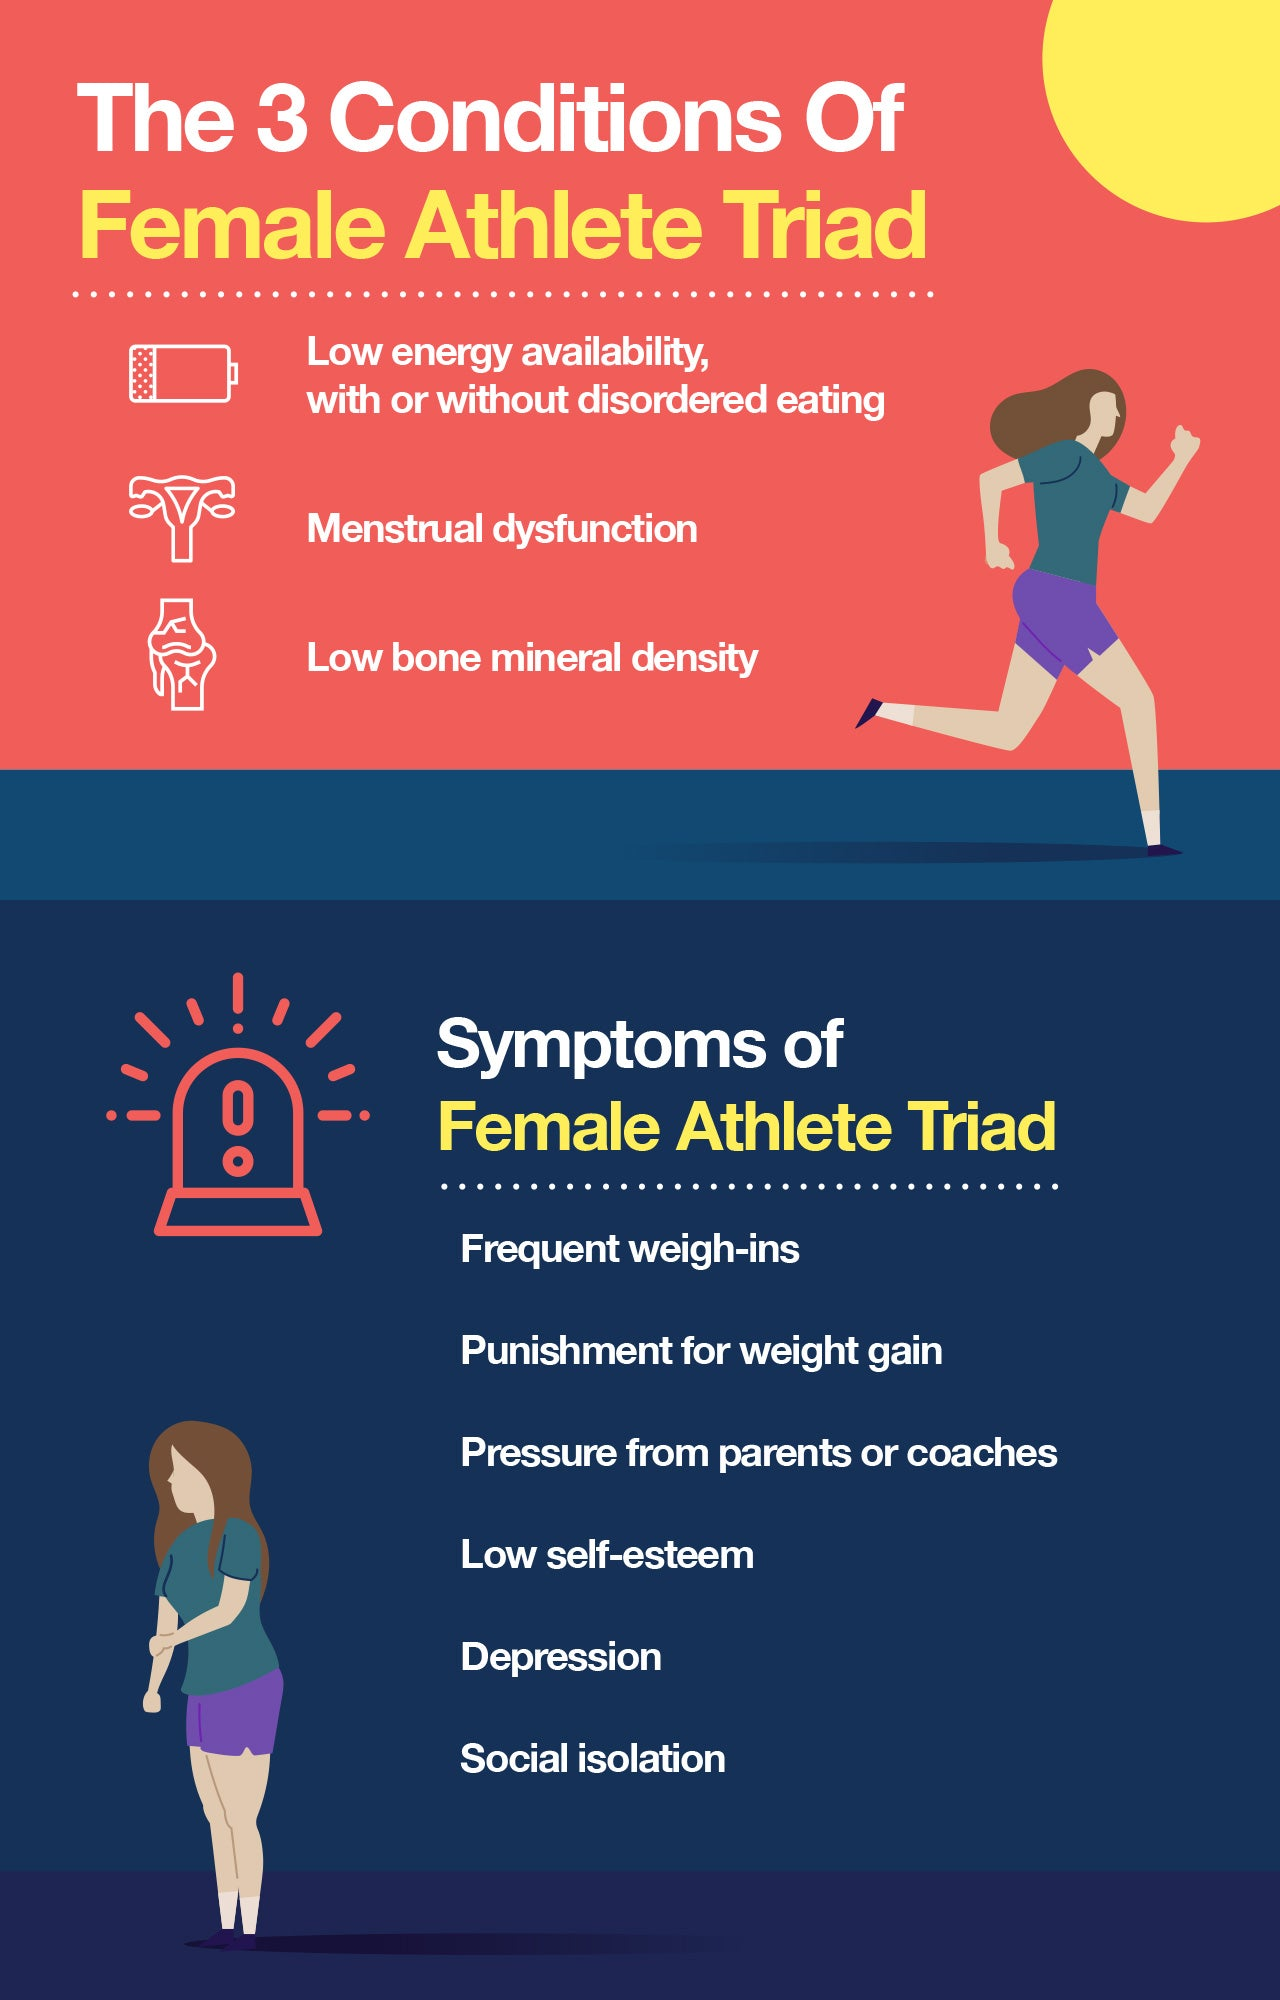 Female athlete triad may result from extreme exercising